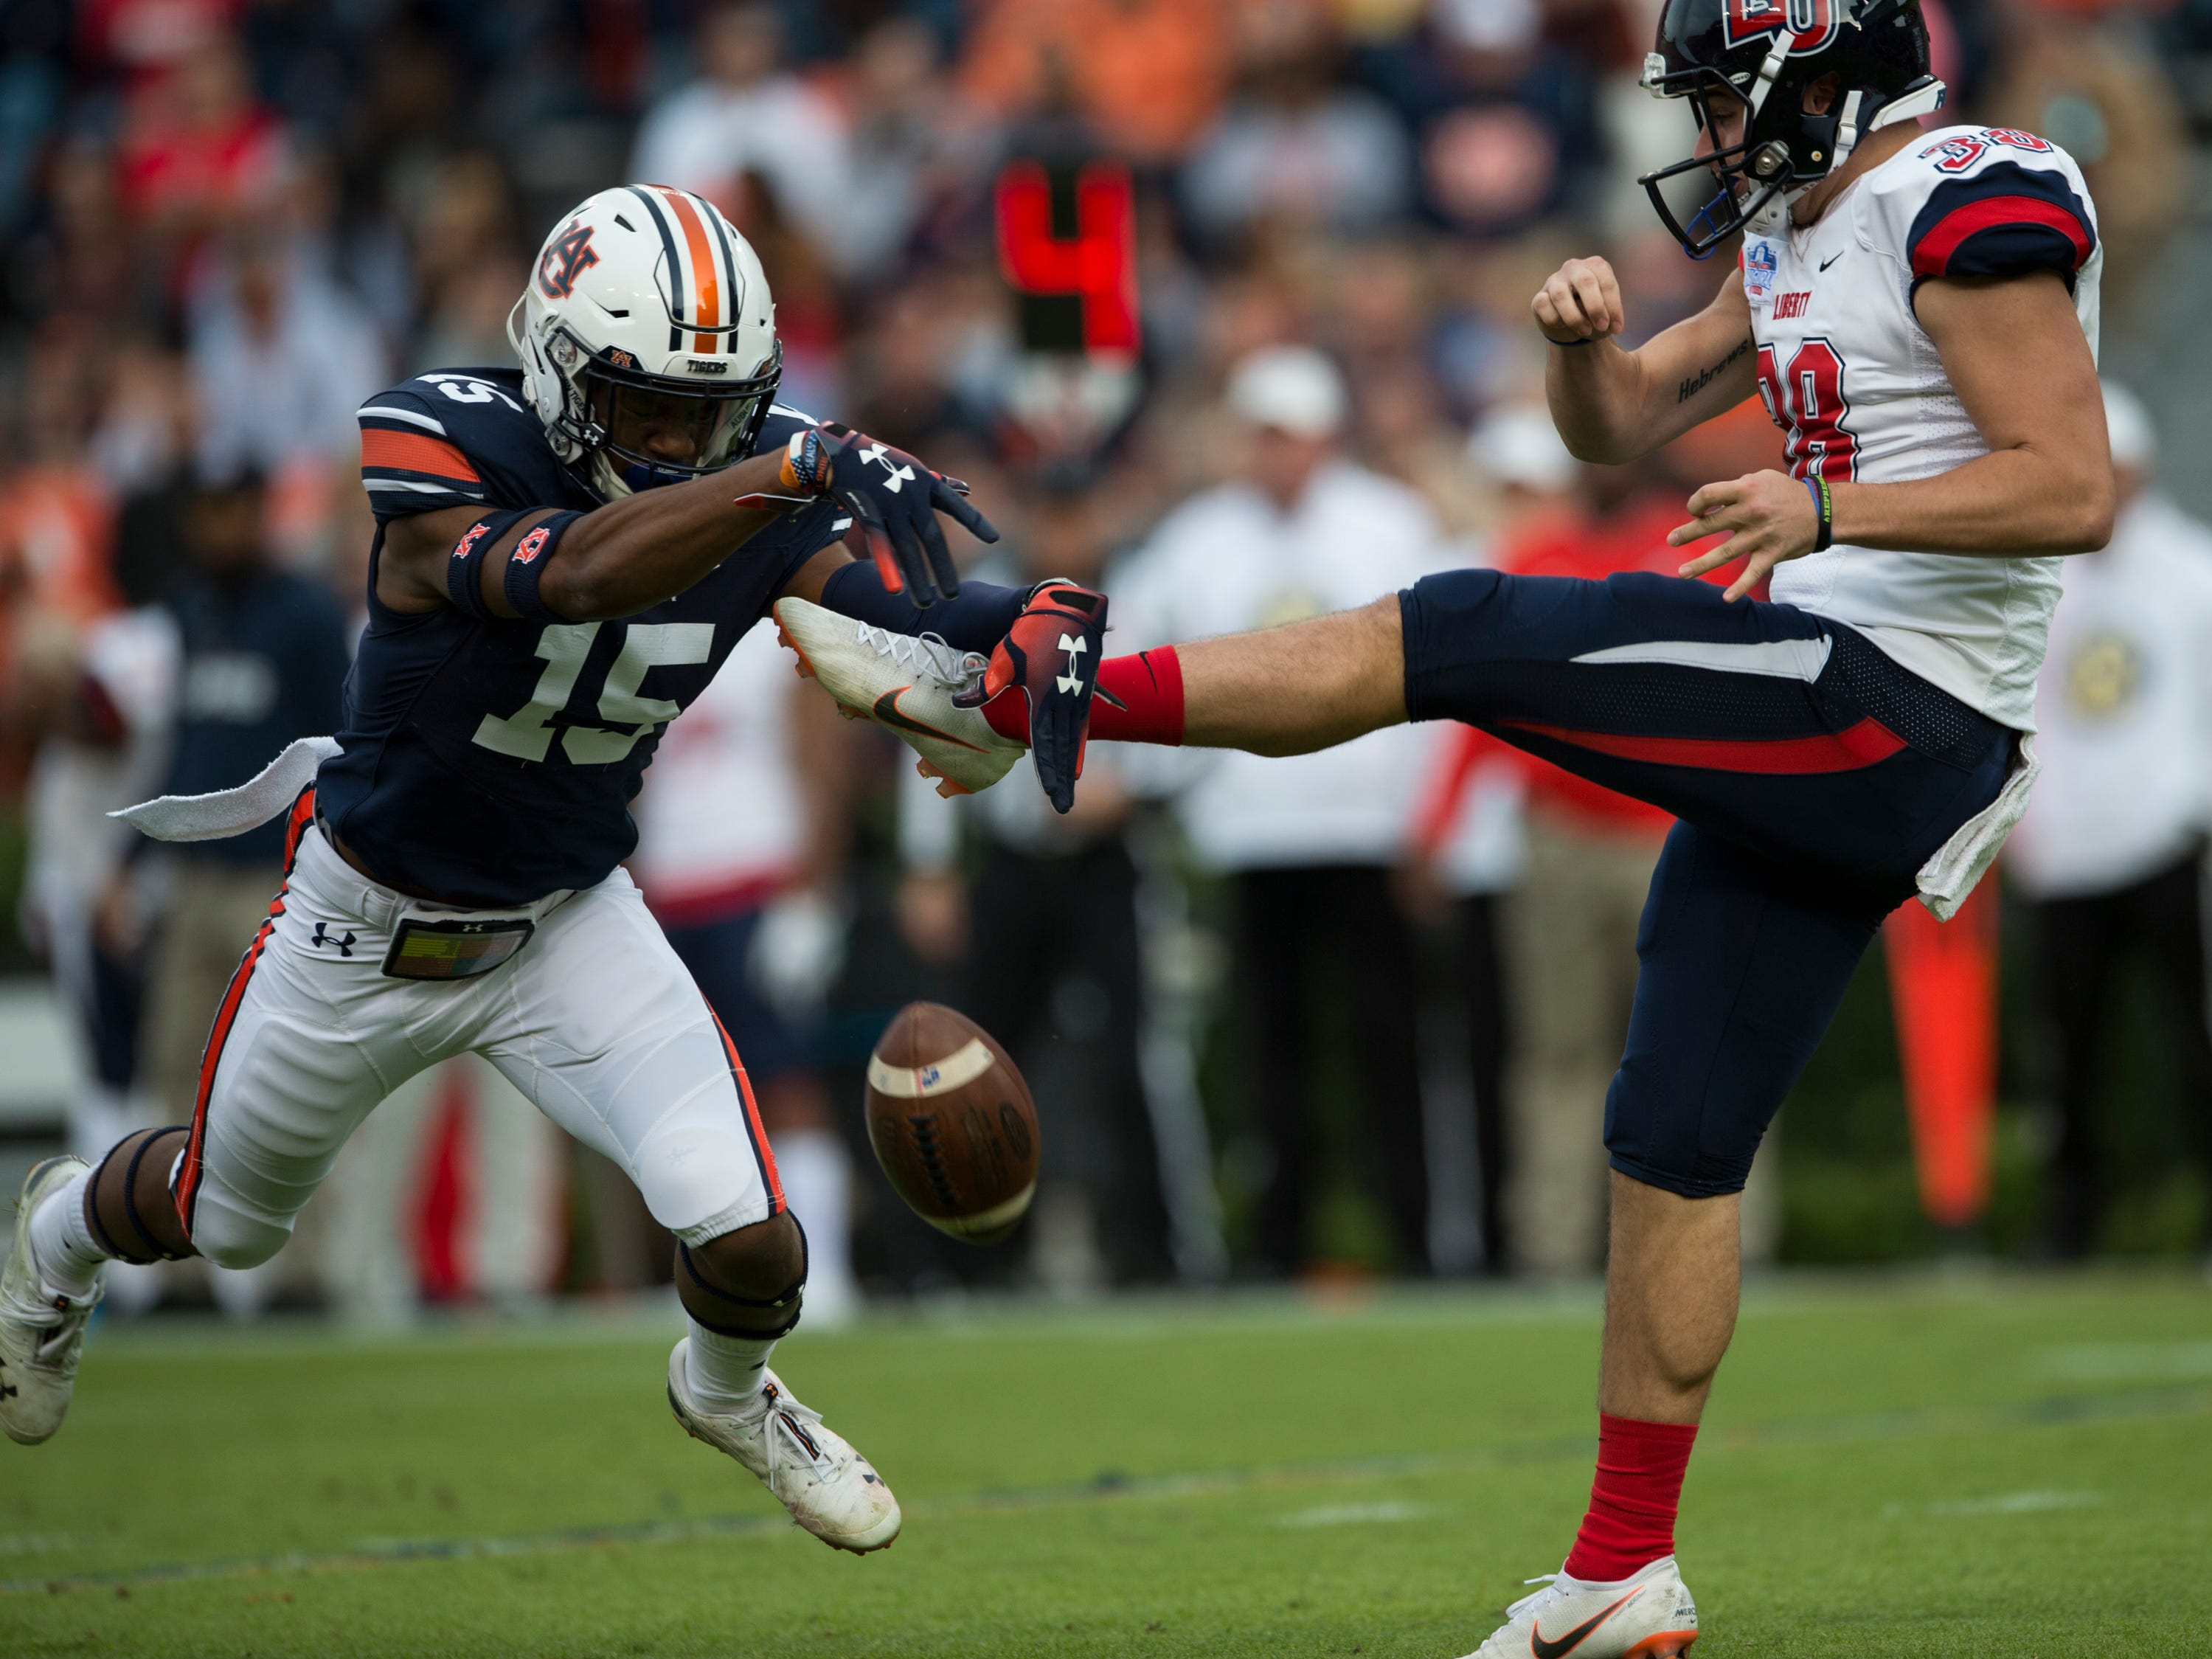 Auburn defensive back Jordyn Peters (15) blocks a Liberty punt at Jordan-Hare Stadium in Auburn, Ala., on Saturday, Nov.. 17, 2018. Auburn leads Liberty 32-0 at halftime. The ball rolled out of the back of the end zone for a safety.